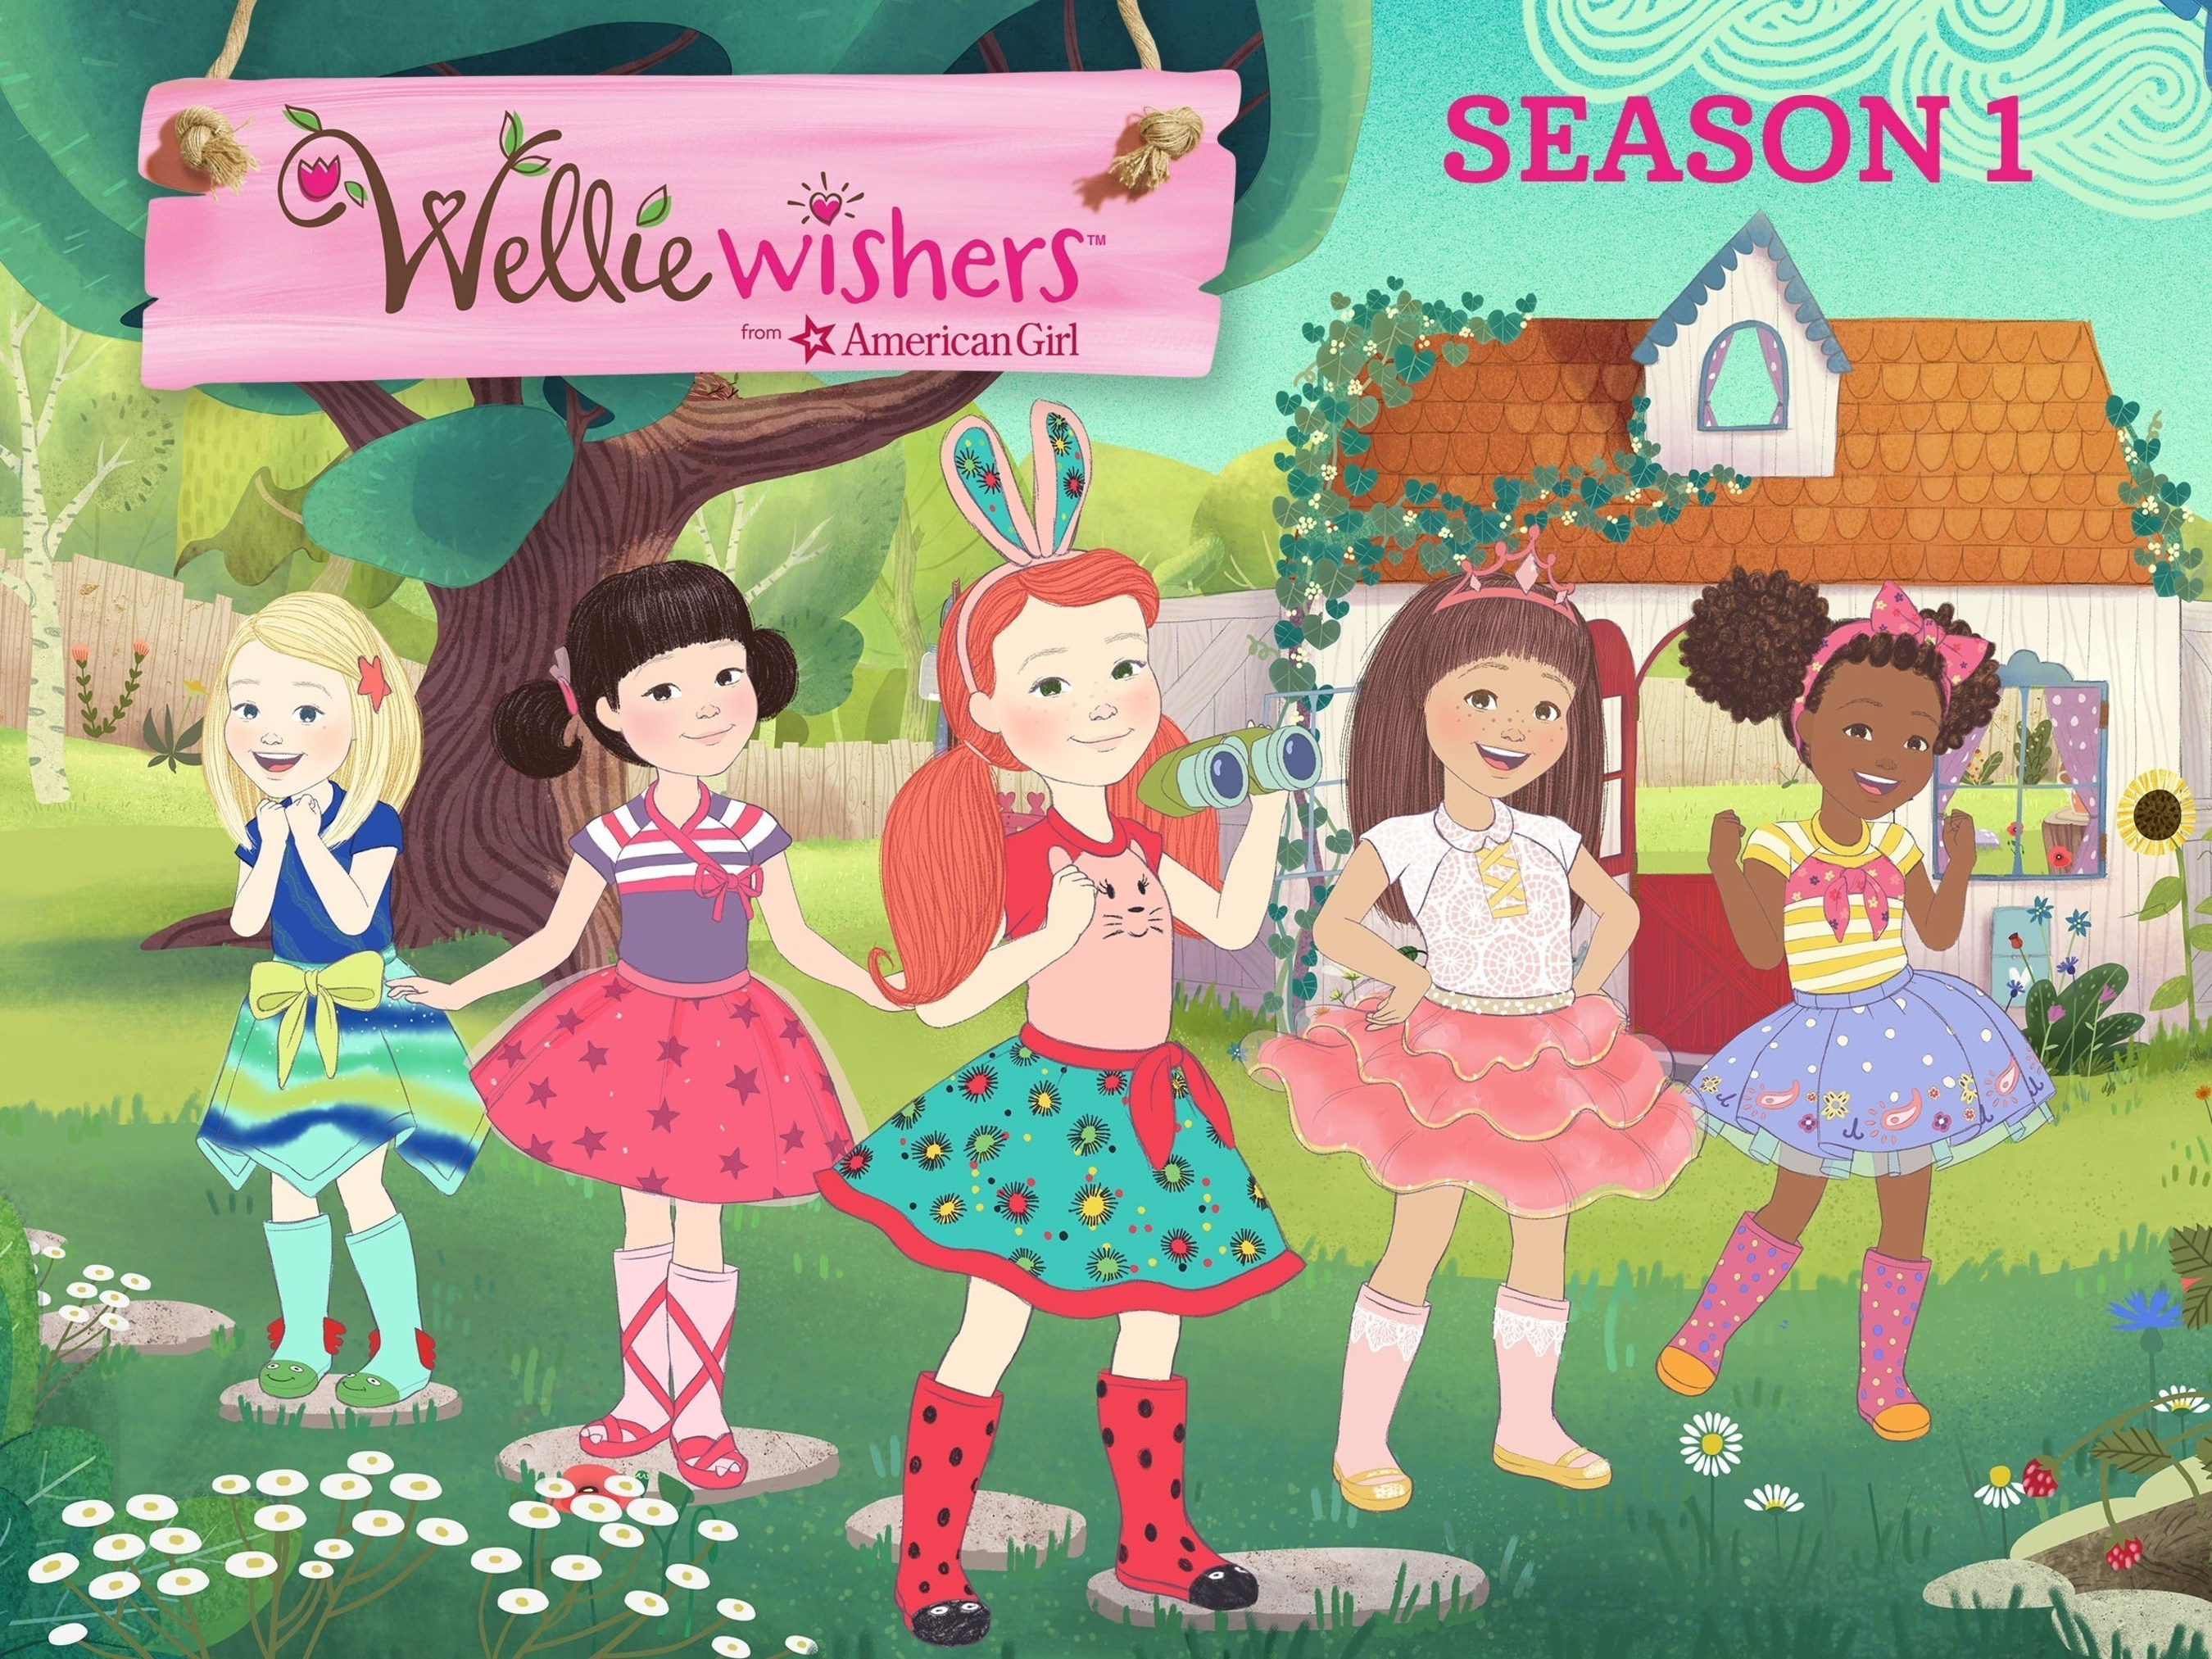 Amazon Prime Video is the exclusive premium subscription streaming home for American Girl's first-ever animated series, WellieWishers